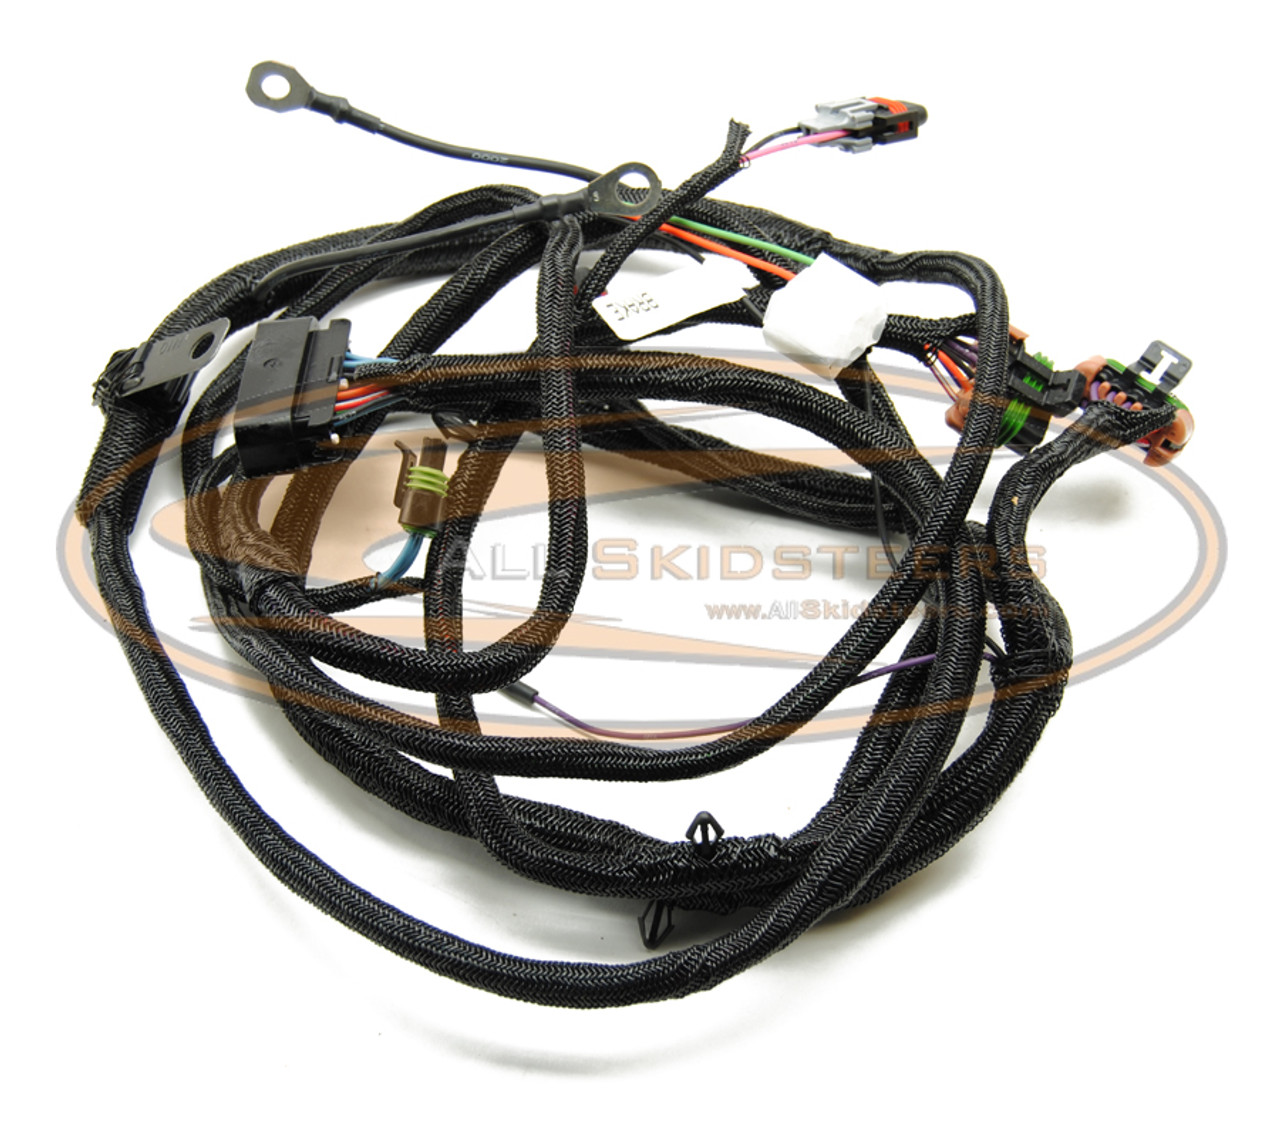 small resolution of cab wiring harness standard for bobcat skid steer replacescab wiring harness standard